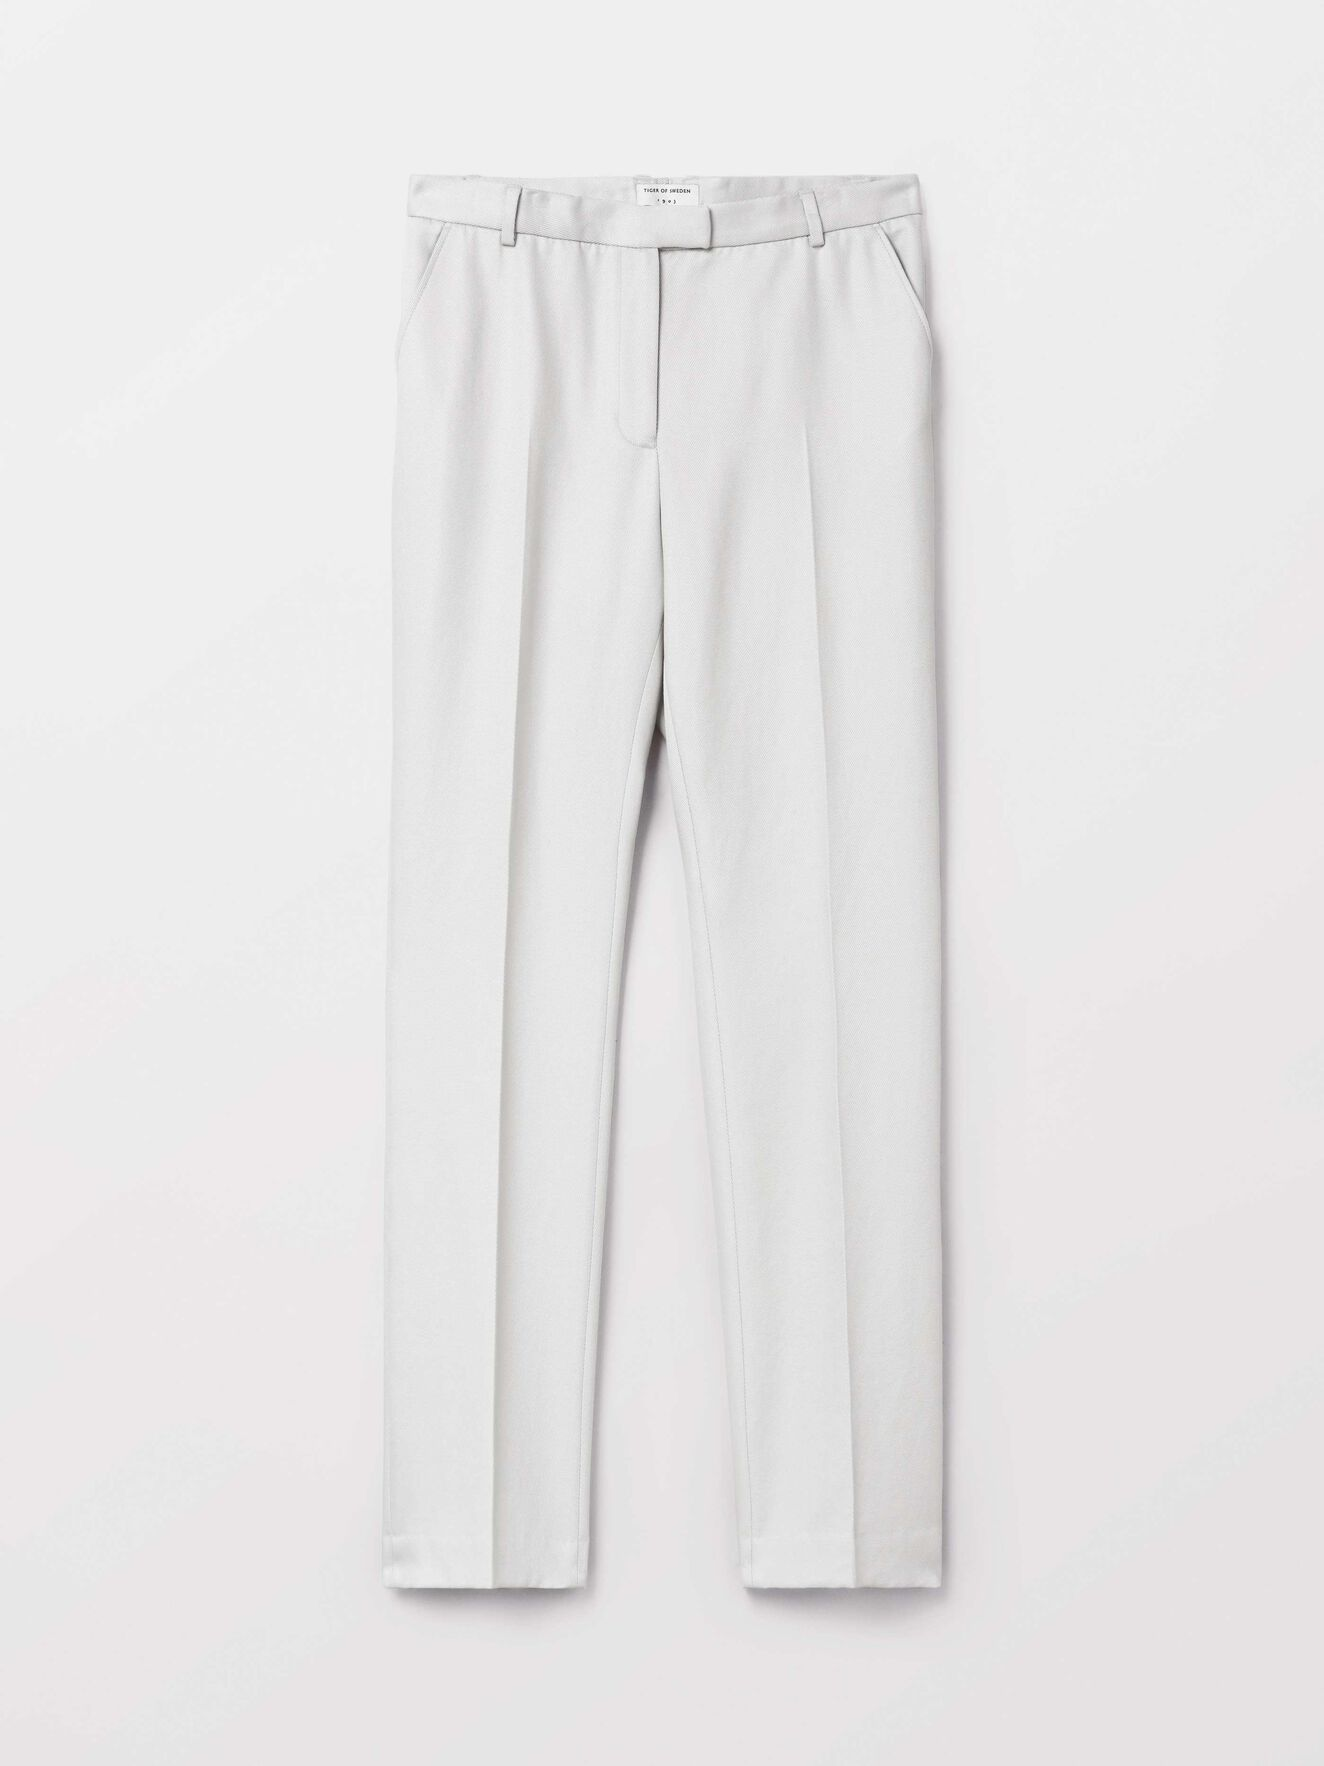 Hollen L Trousers in February Sky from Tiger of Sweden